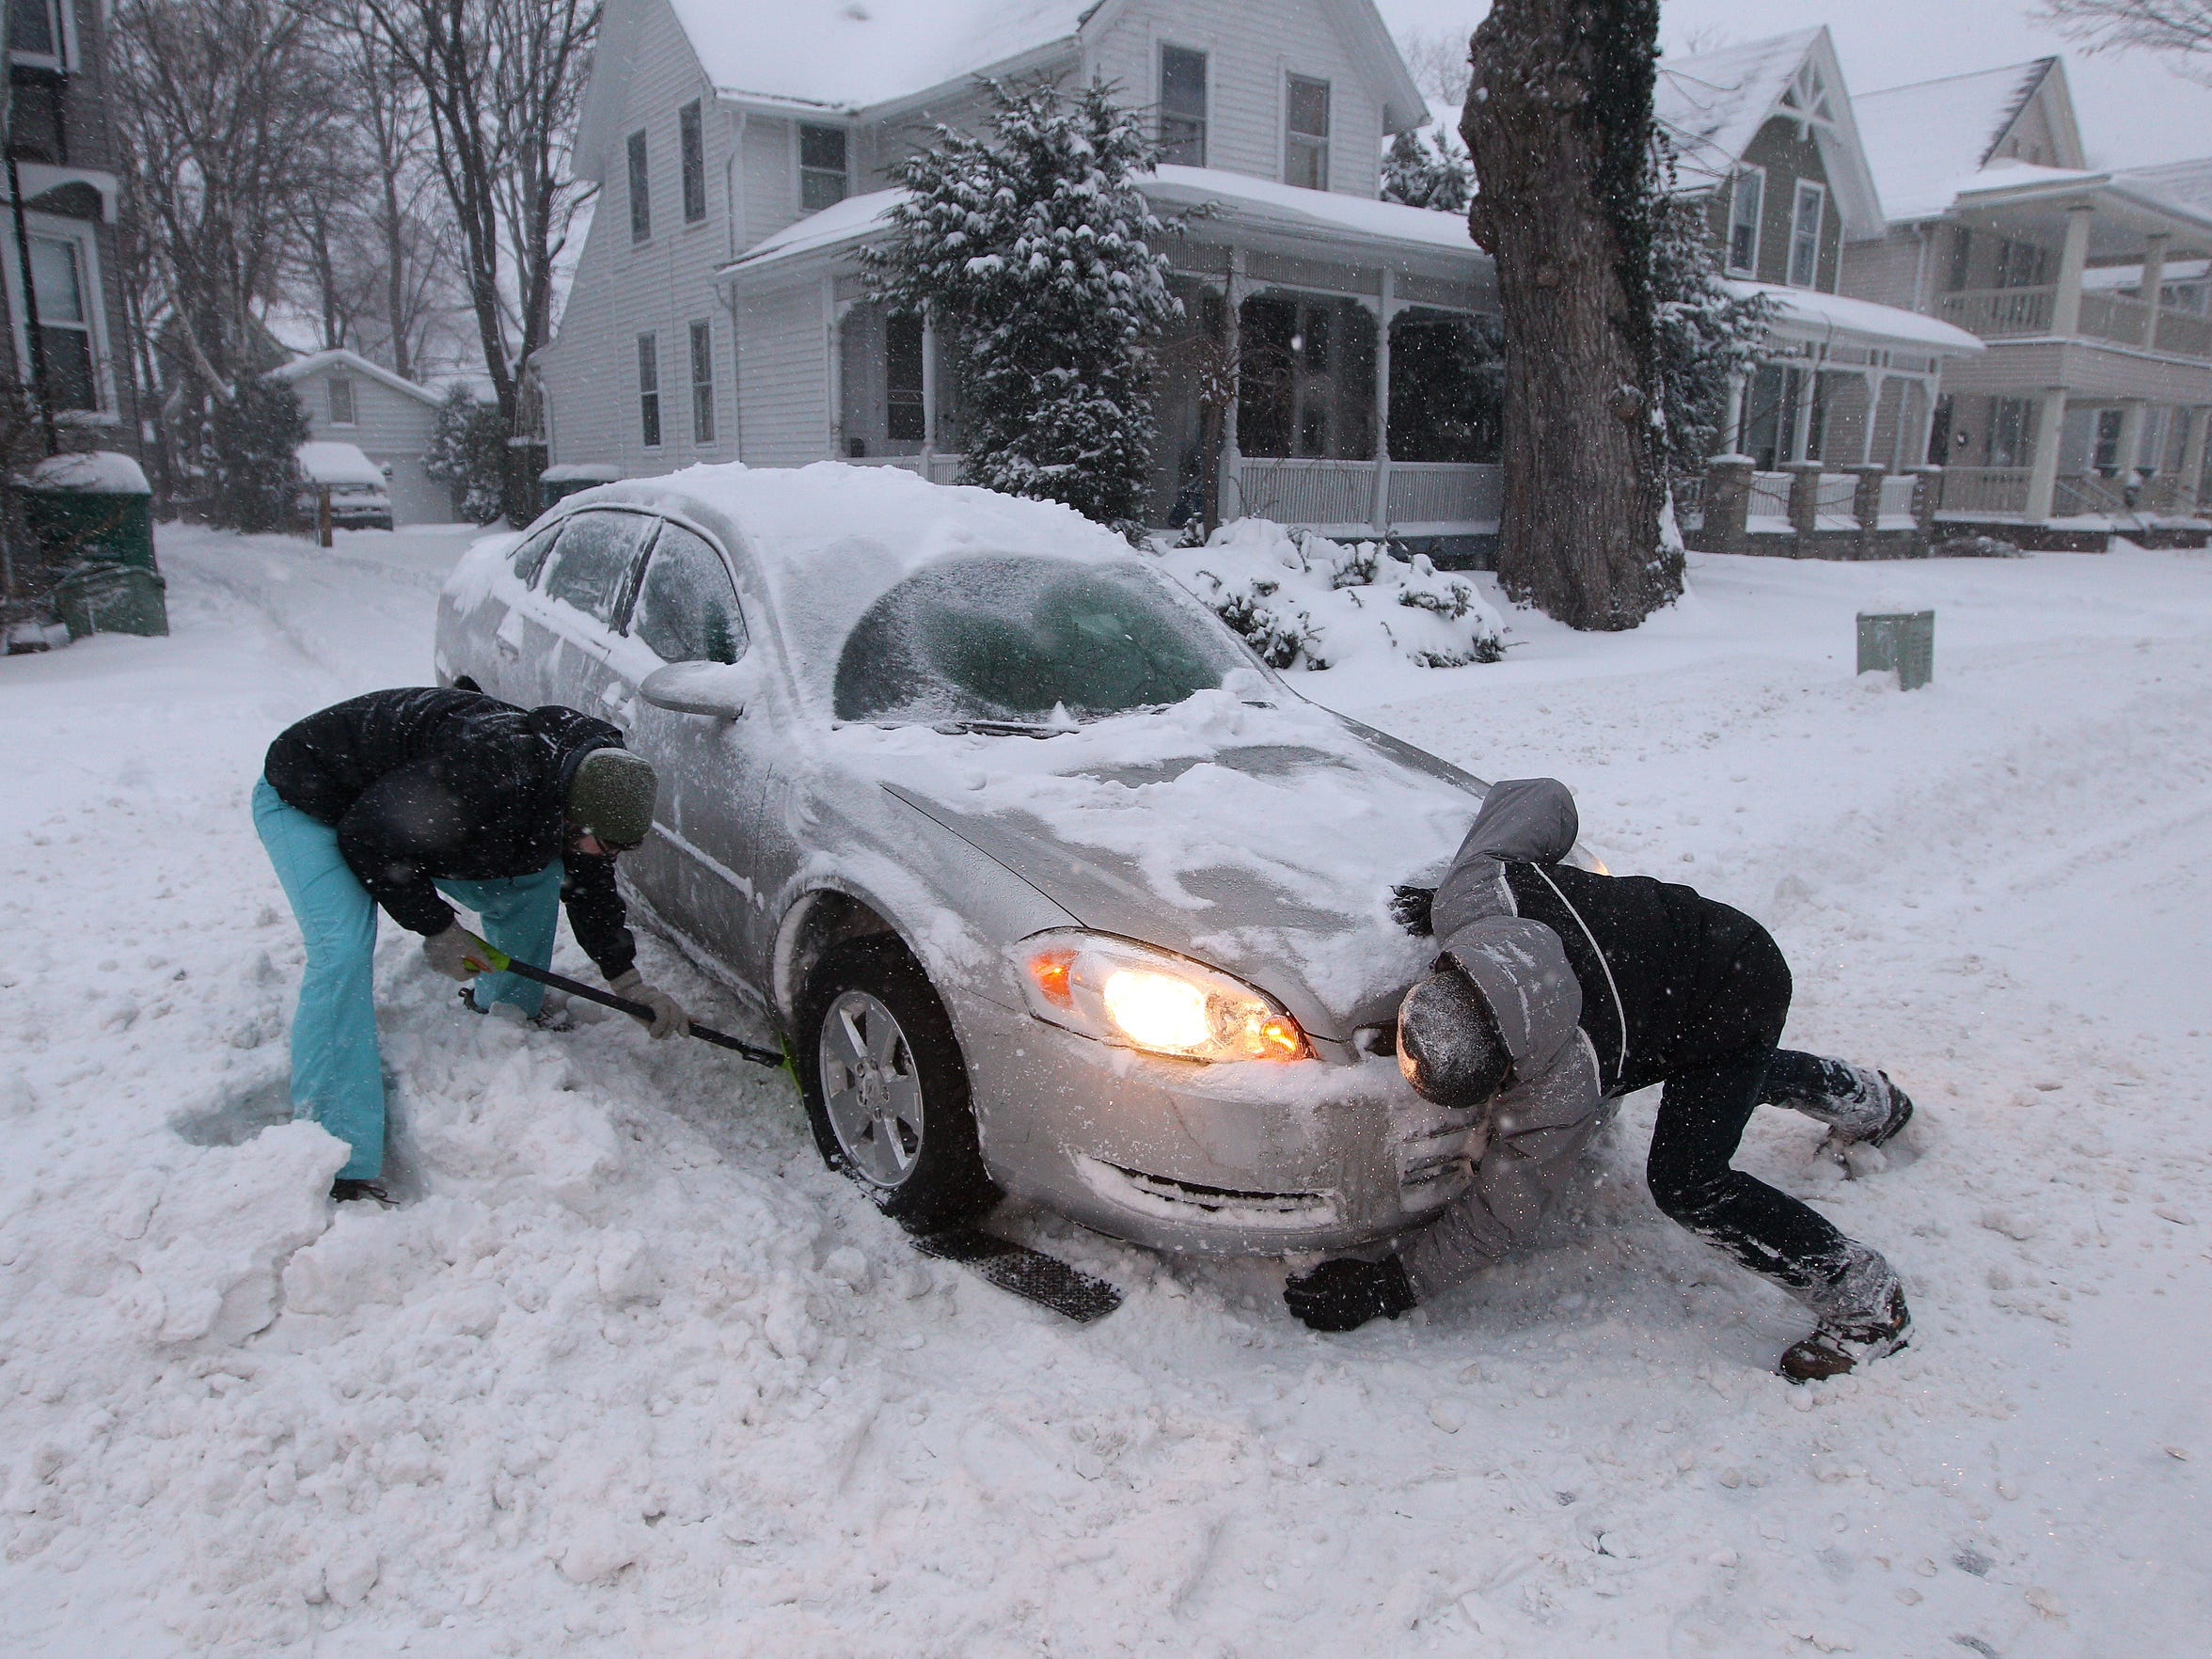 Matthew Kotula, right, got his car stuck in the snow on Cambridge Street and got some help from his neighbor Harry Weisberg with a shovel.